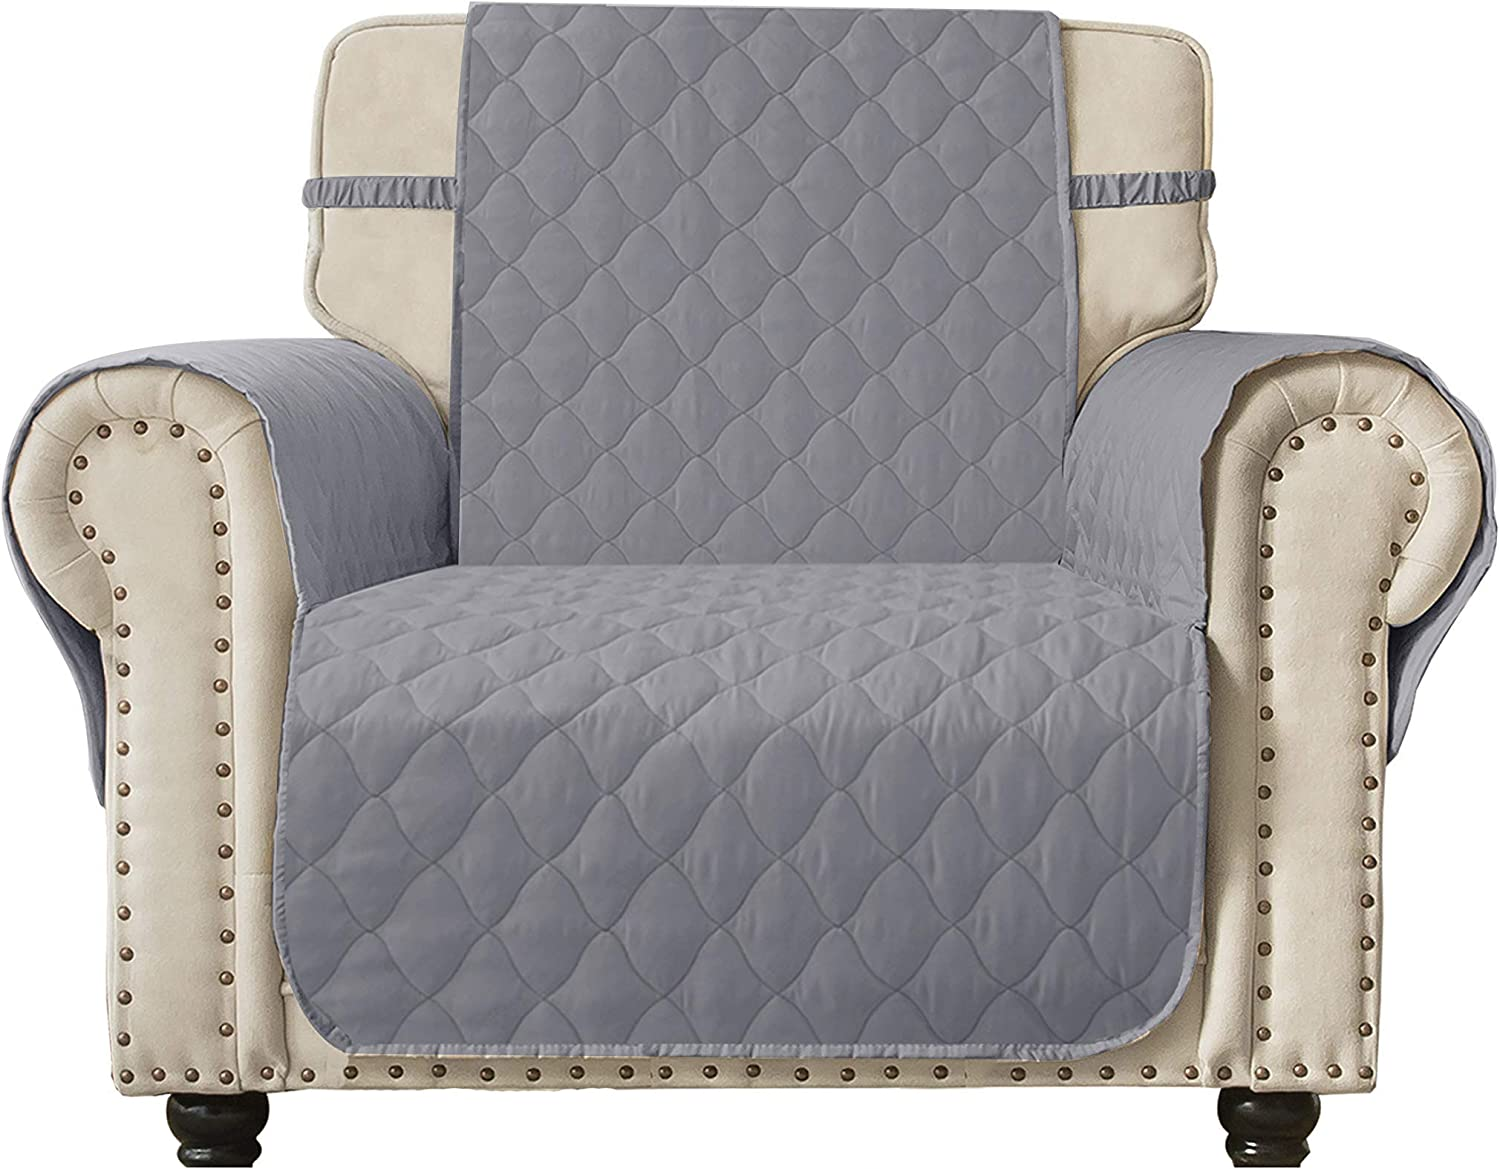 """Ameritex Recliner Chair Cover Waterproof Stay in Place, Furniture Protector, Recliner Slipcovers for Dogs (30"""", Light Grey)"""